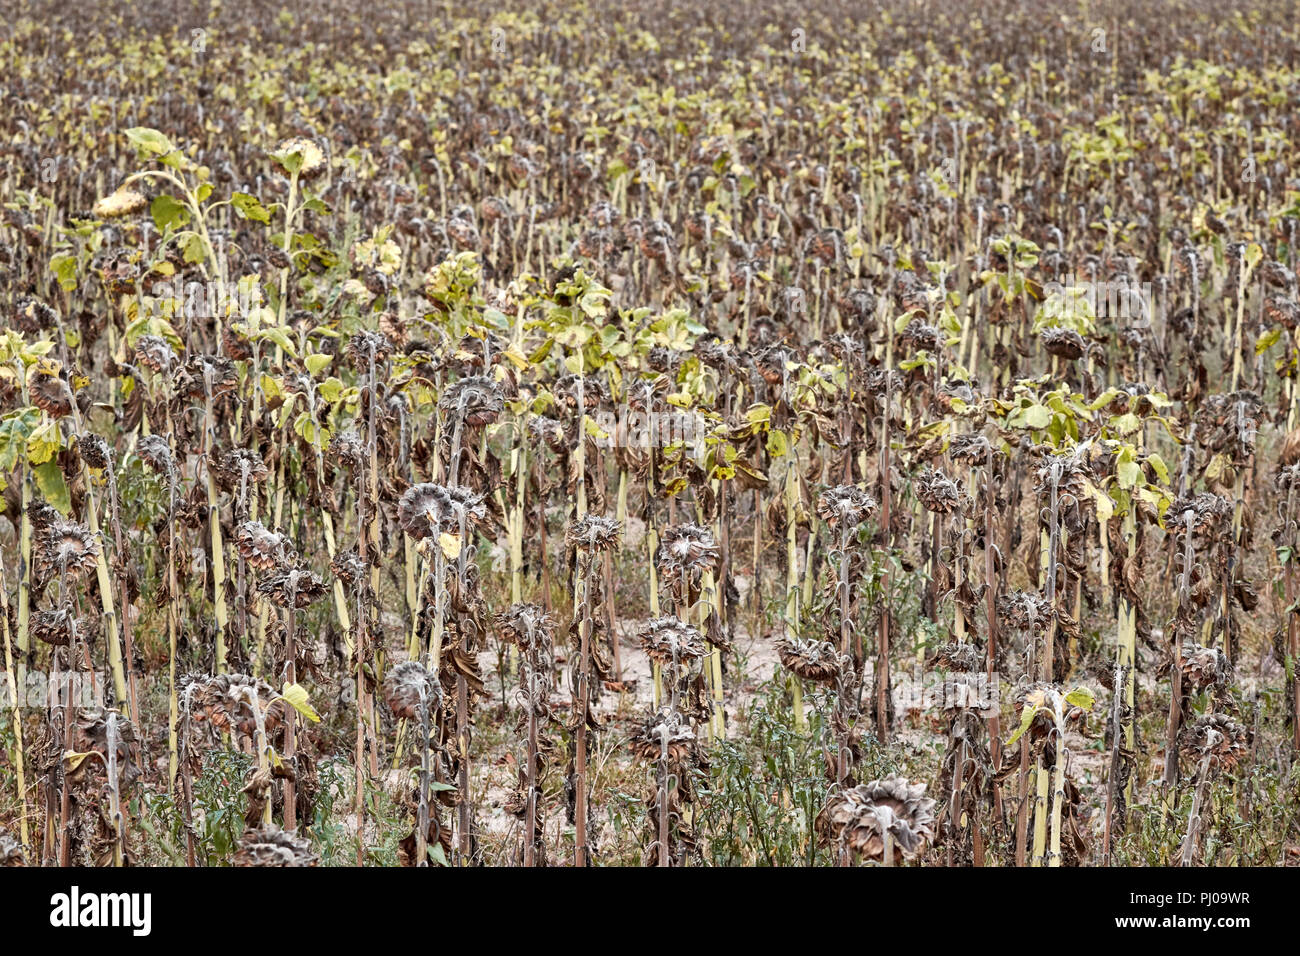 Withered sunflowers field, natural disaster caused by extreme heat and record low rainfall in Europe during summer 2018. - Stock Image